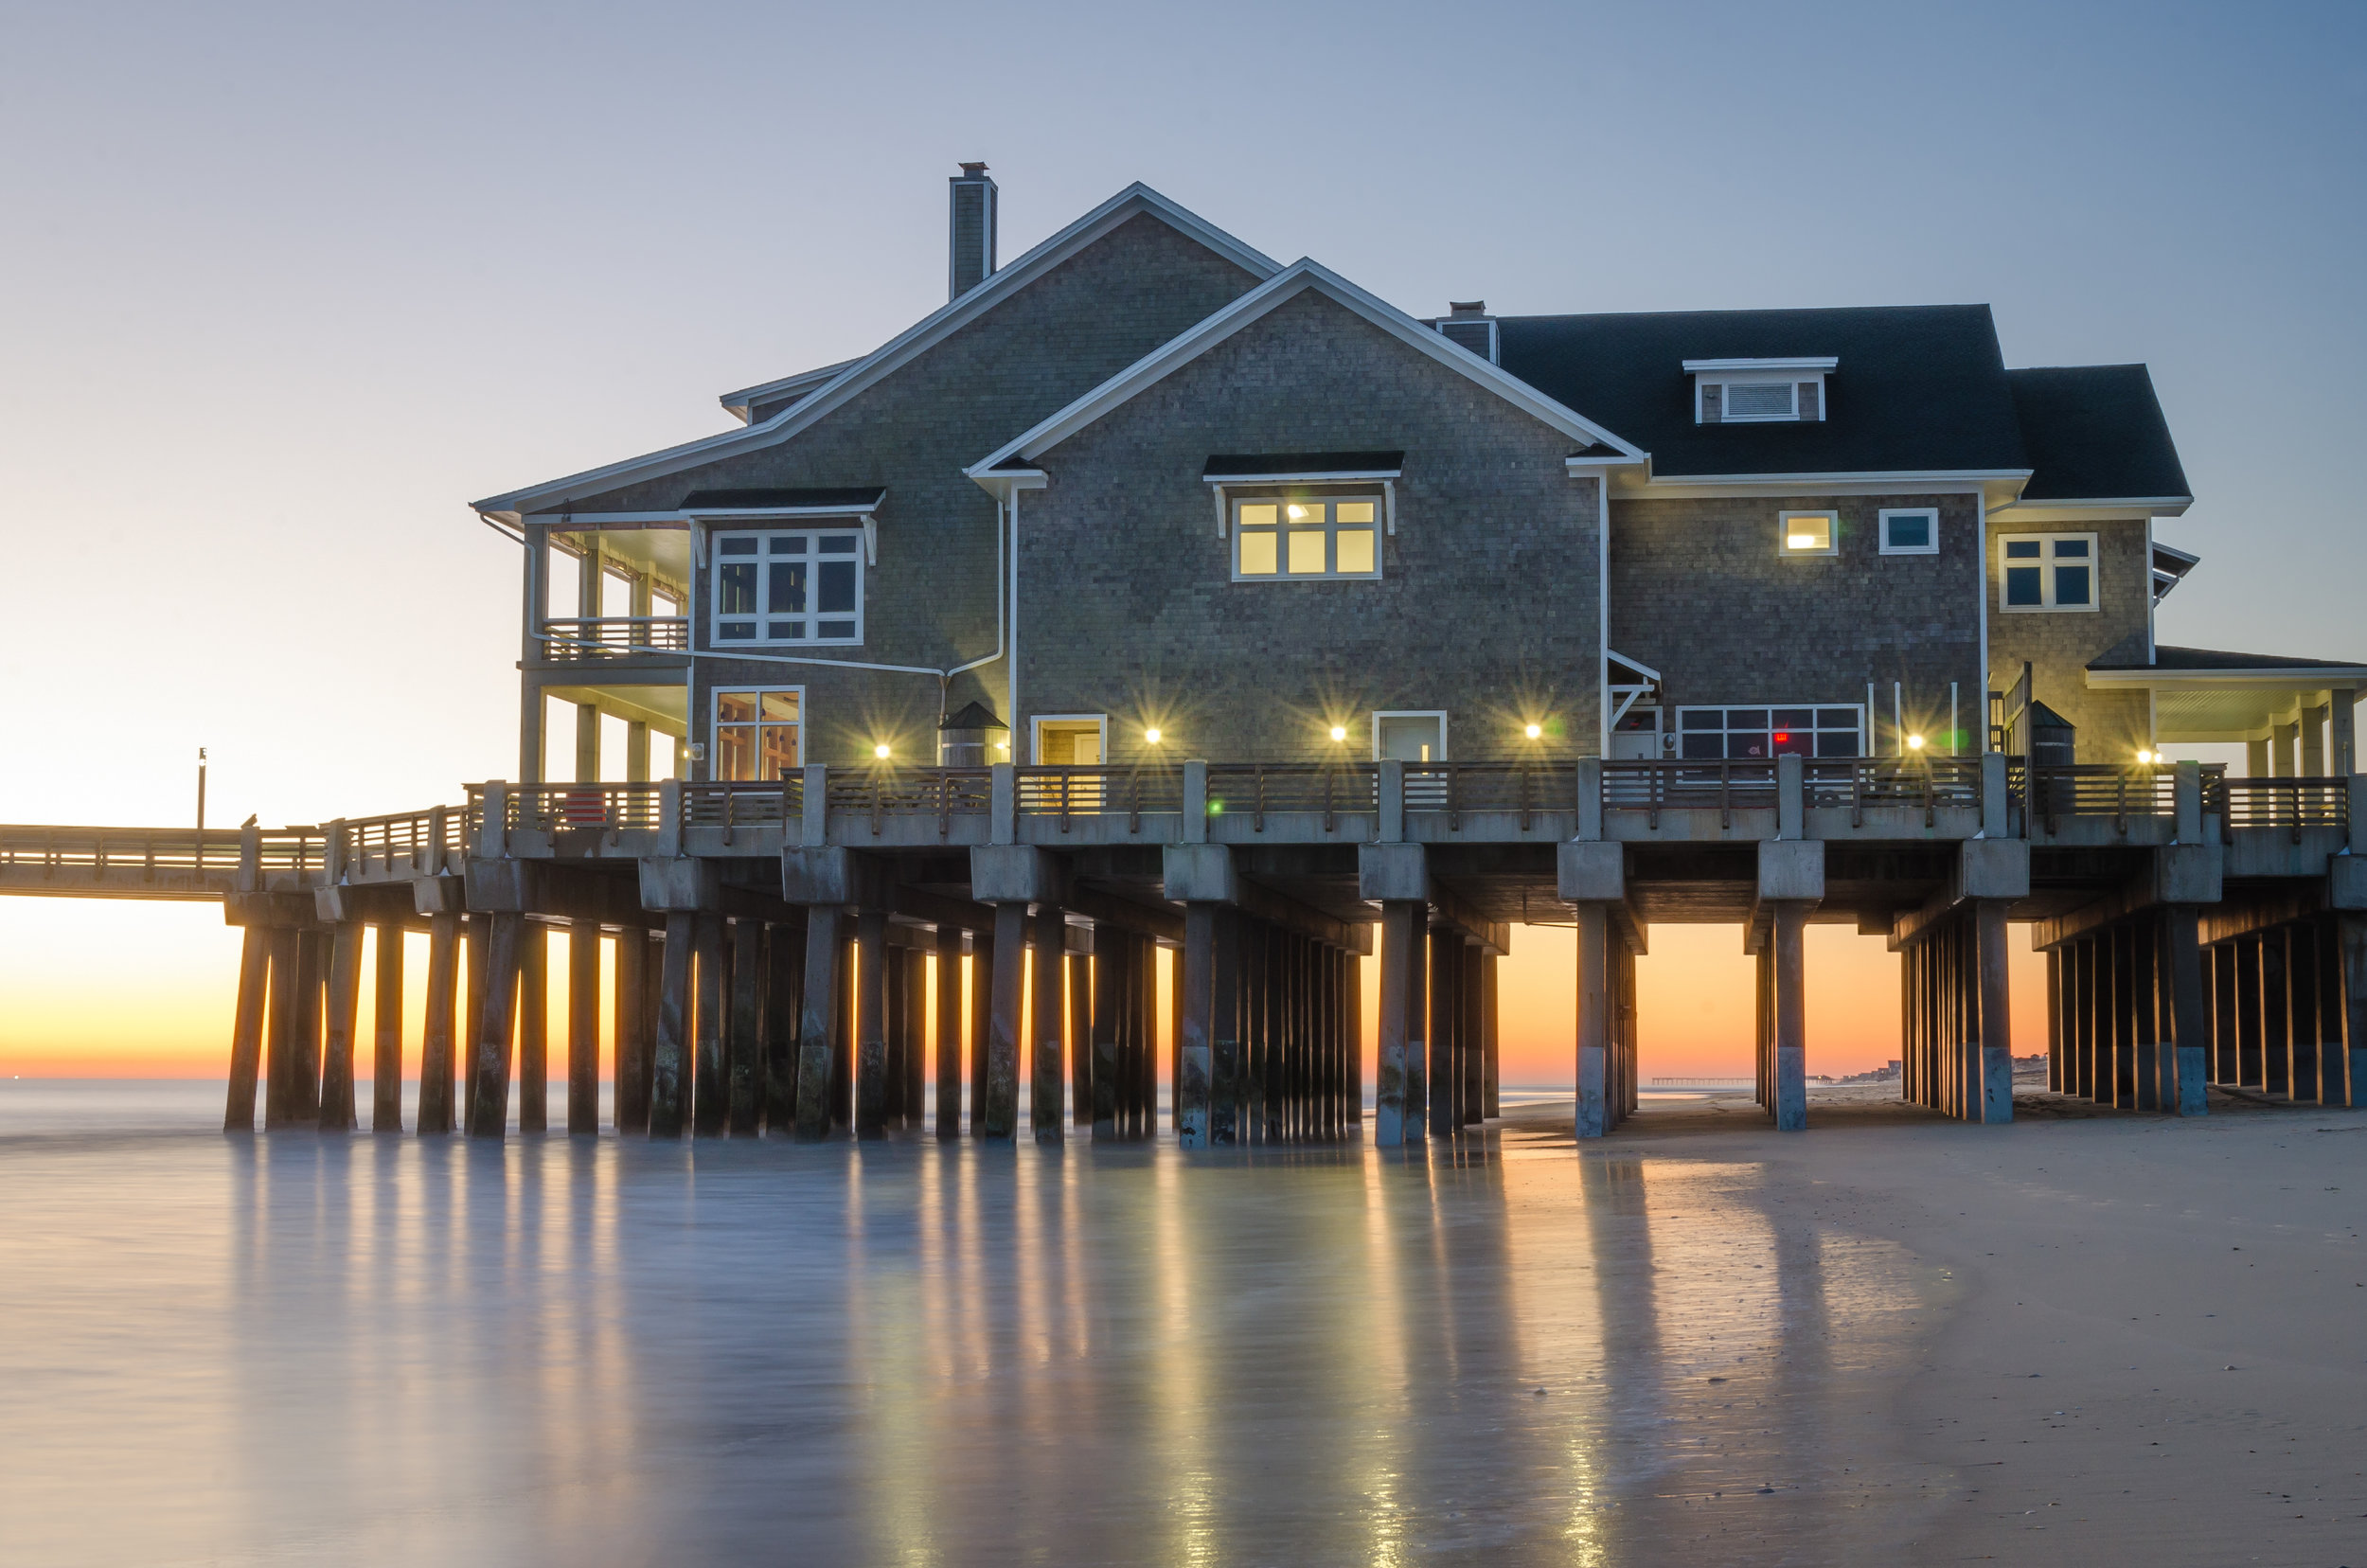 Jennettes Pier-Nags Head-Outer Banks-OBX-North Carolina-sunrise-dawn-reflection.jpg